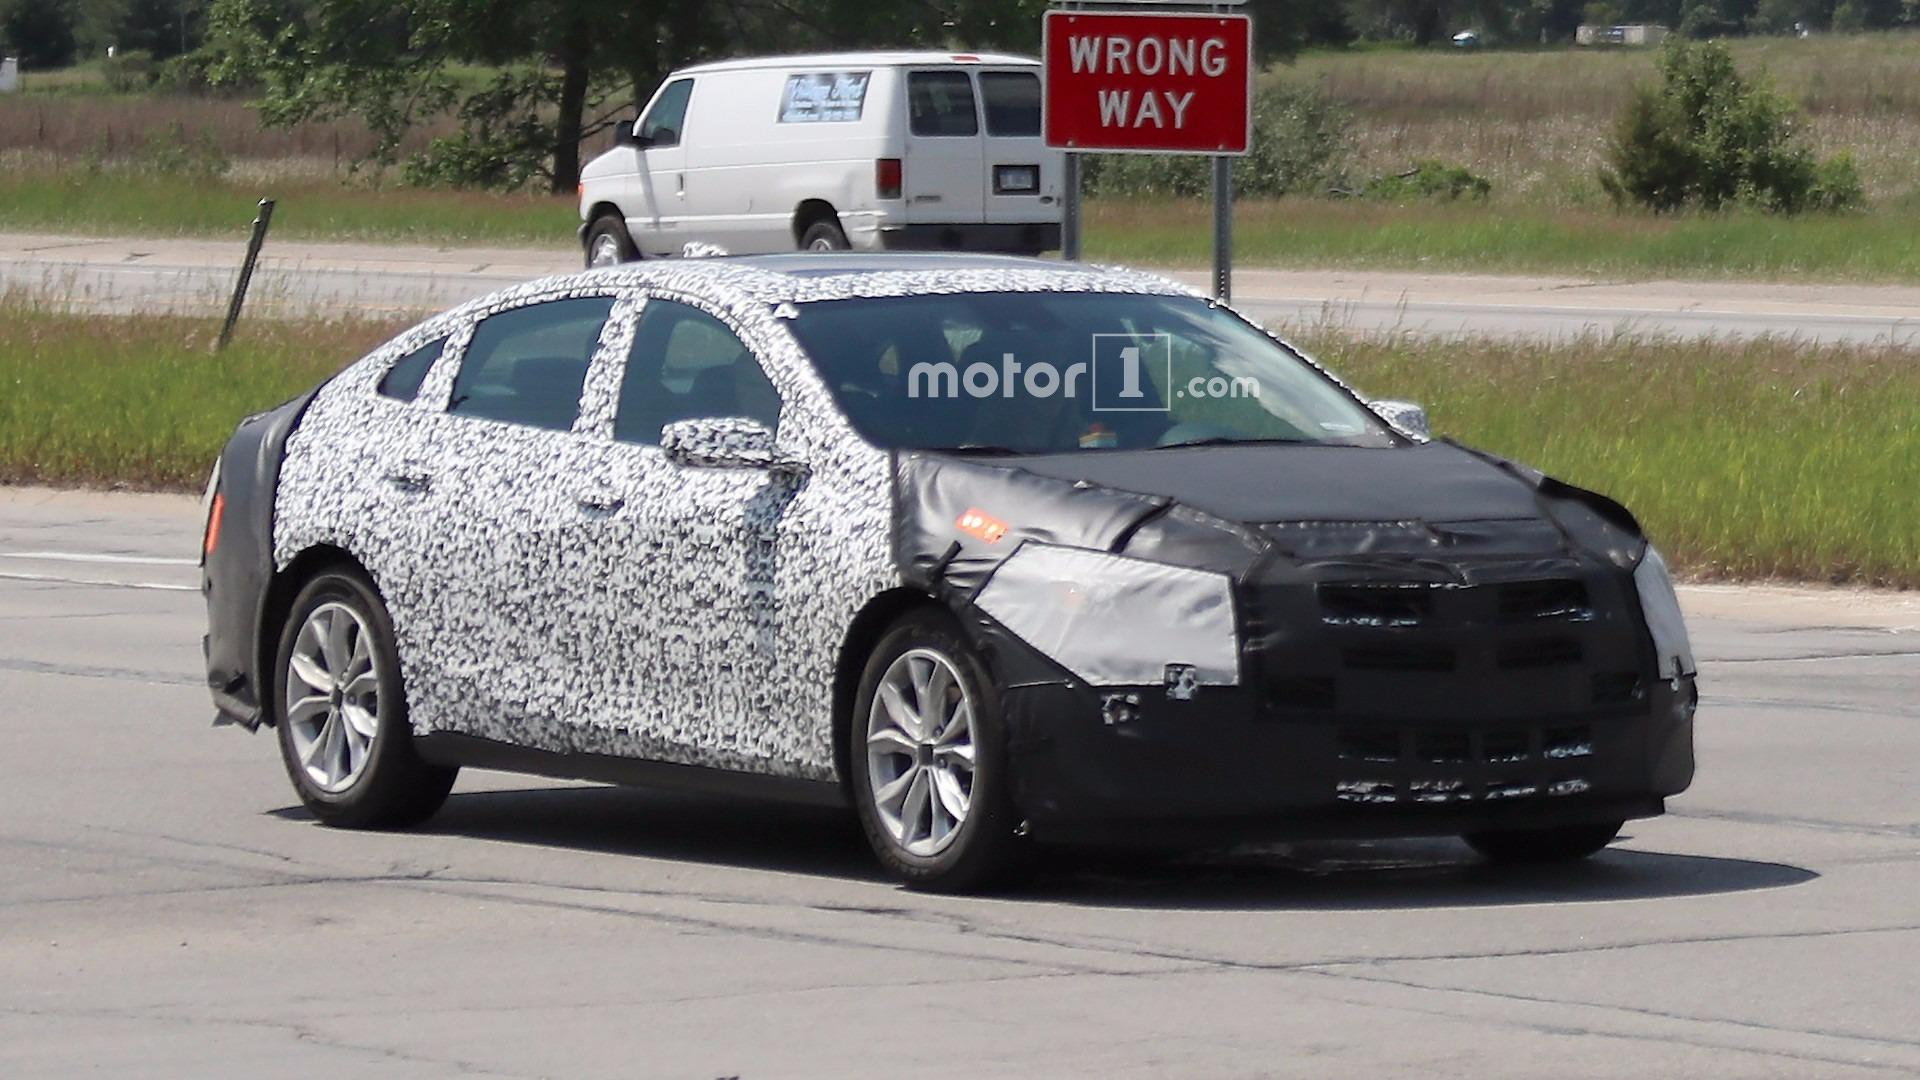 Acura Of Milford >> 2019 Chevy Malibu Prototype Caught Hiding In Plain Sight